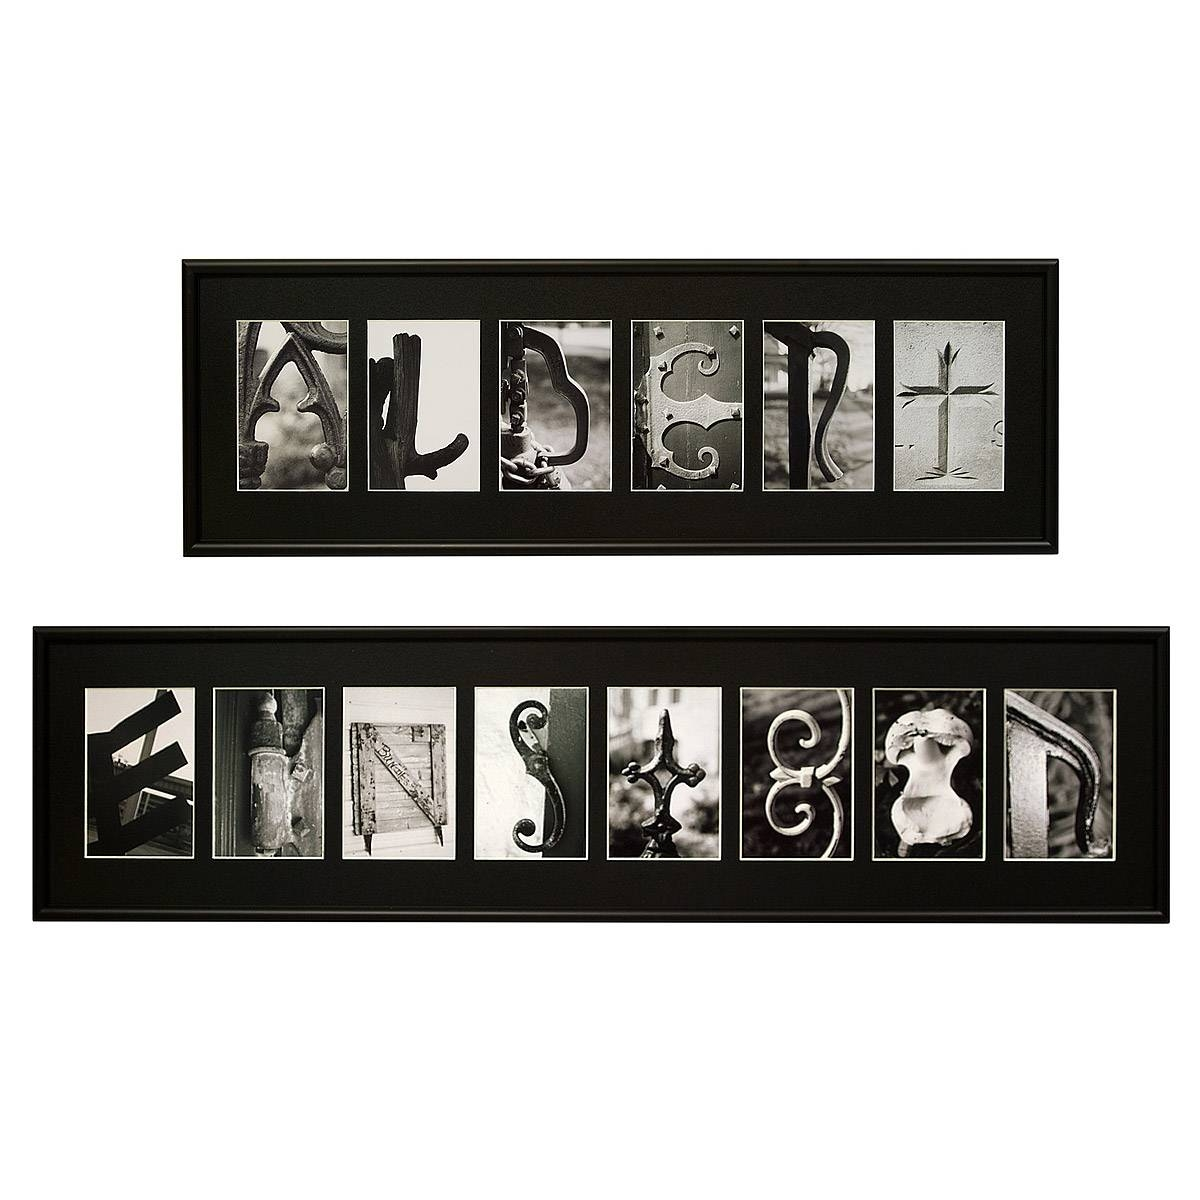 Exquisite Design Personalized Last Name Wall Art Smartness – Wall Inside Most Current Personalized Last Name Wall Art (Gallery 1 of 20)